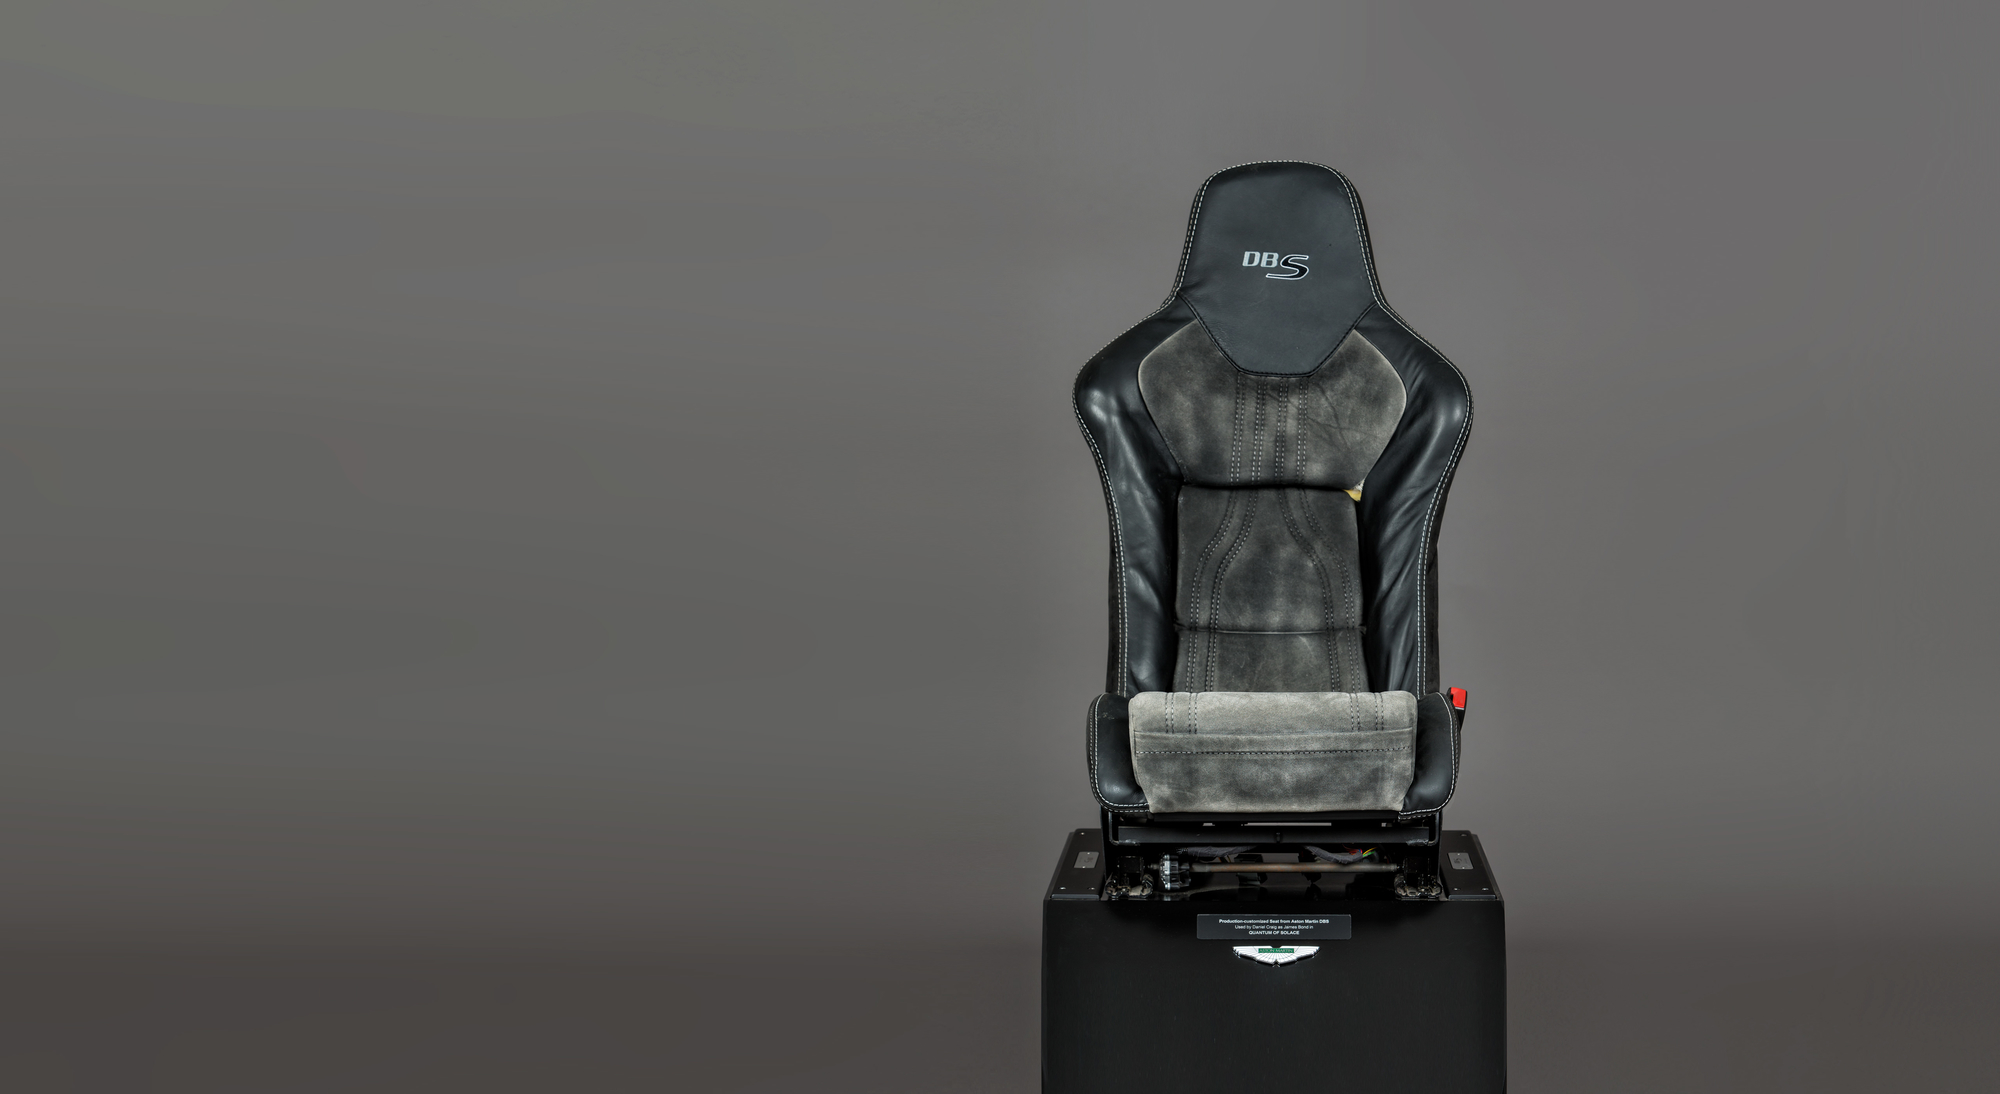 Rp2 Wide Aston Martin Dbs Seat Front